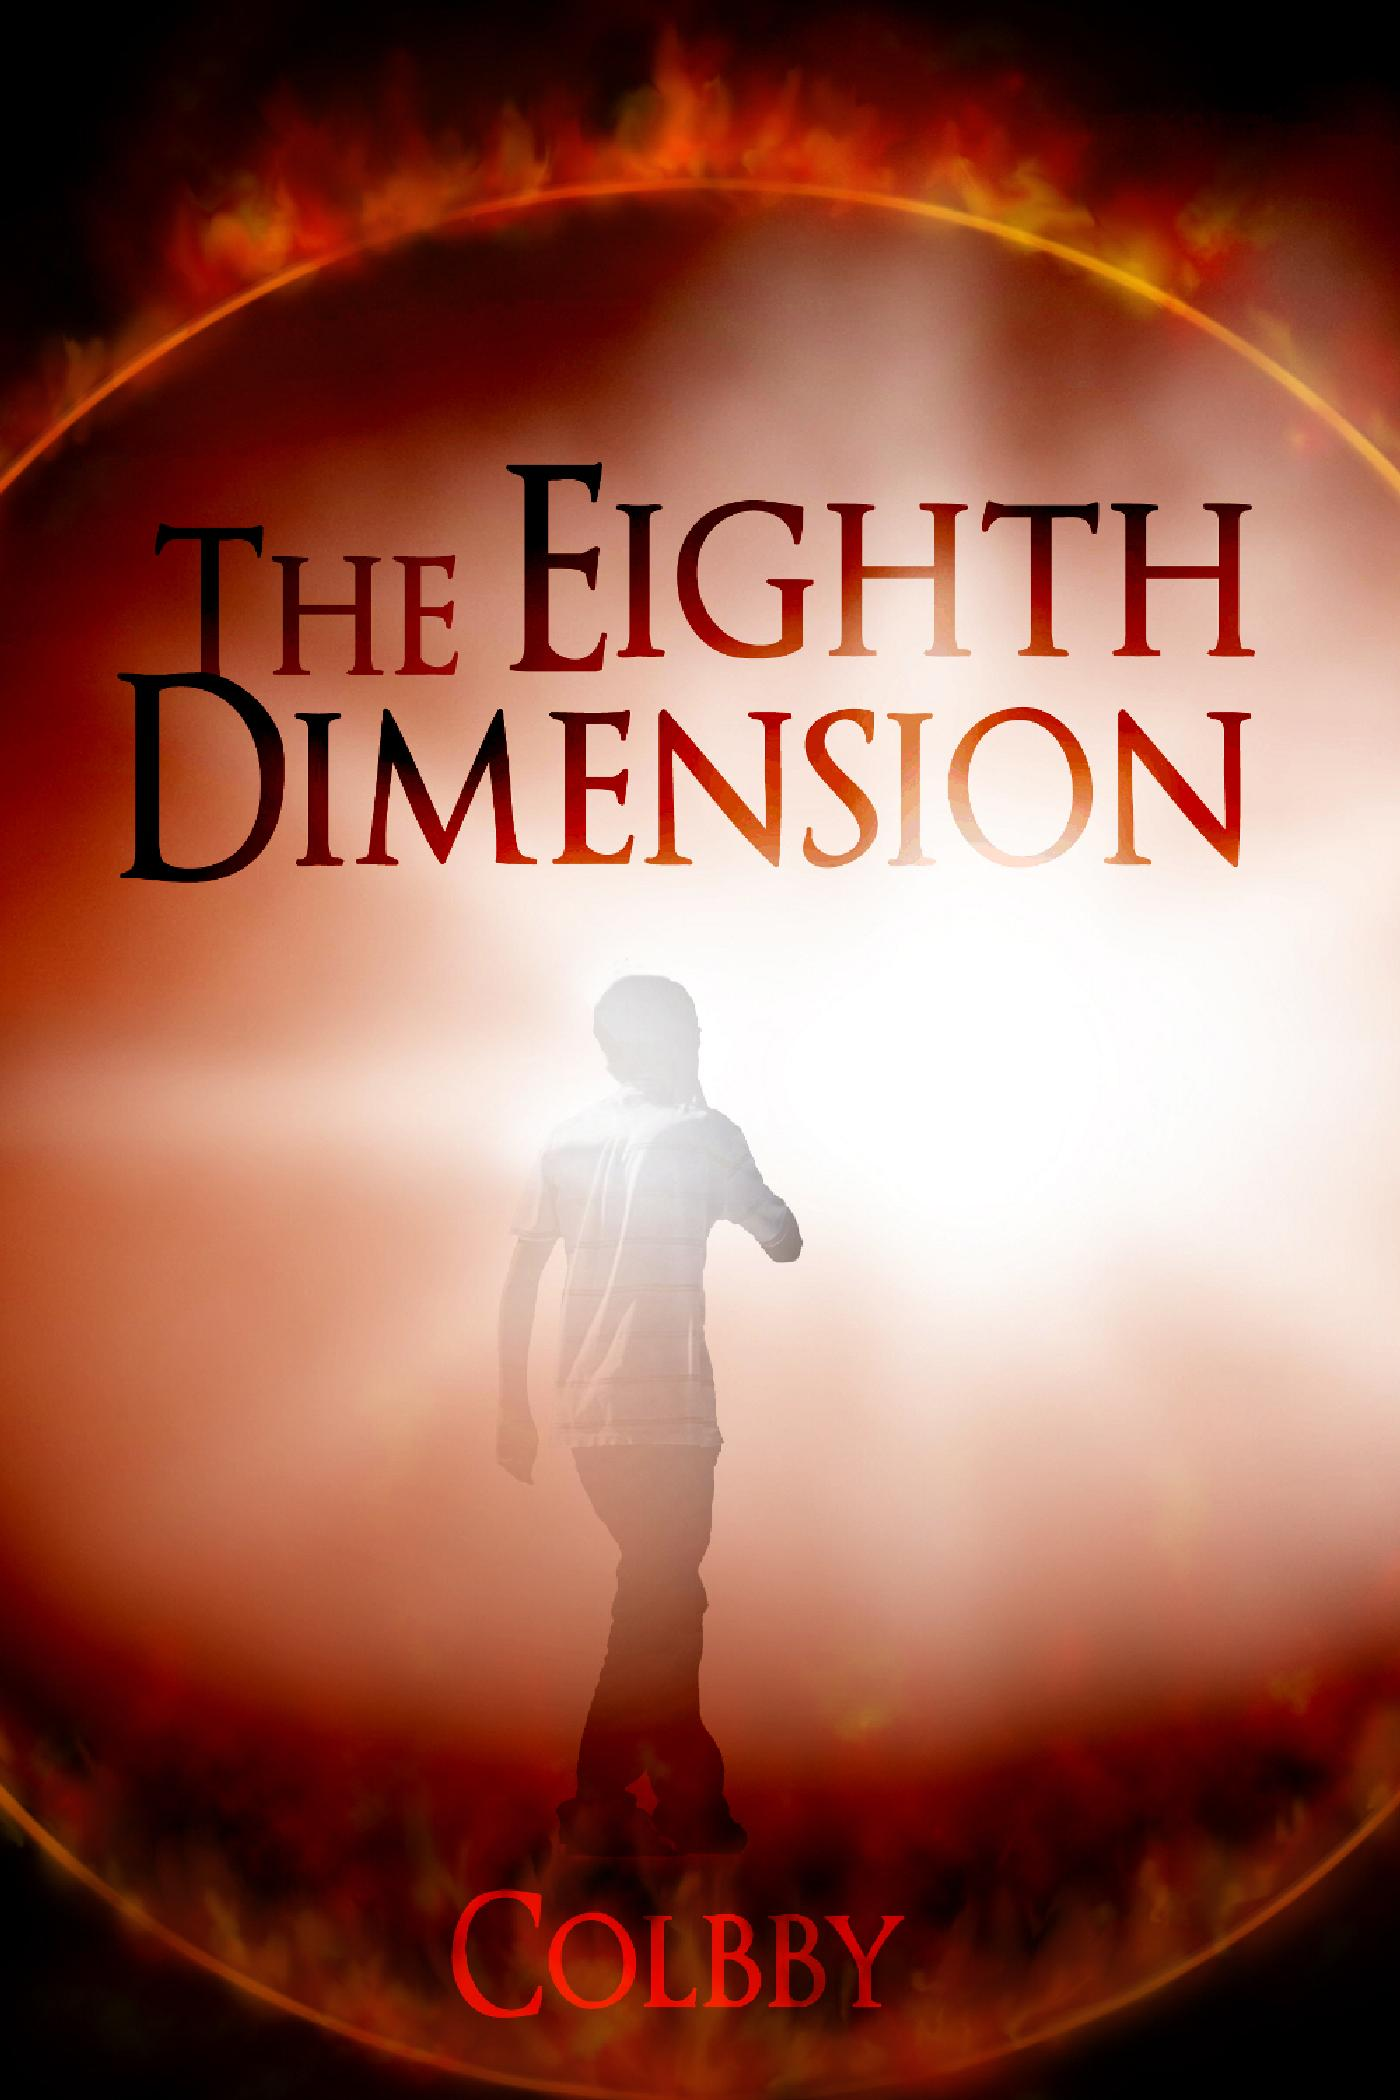 THE EIGHTH DIMENSION